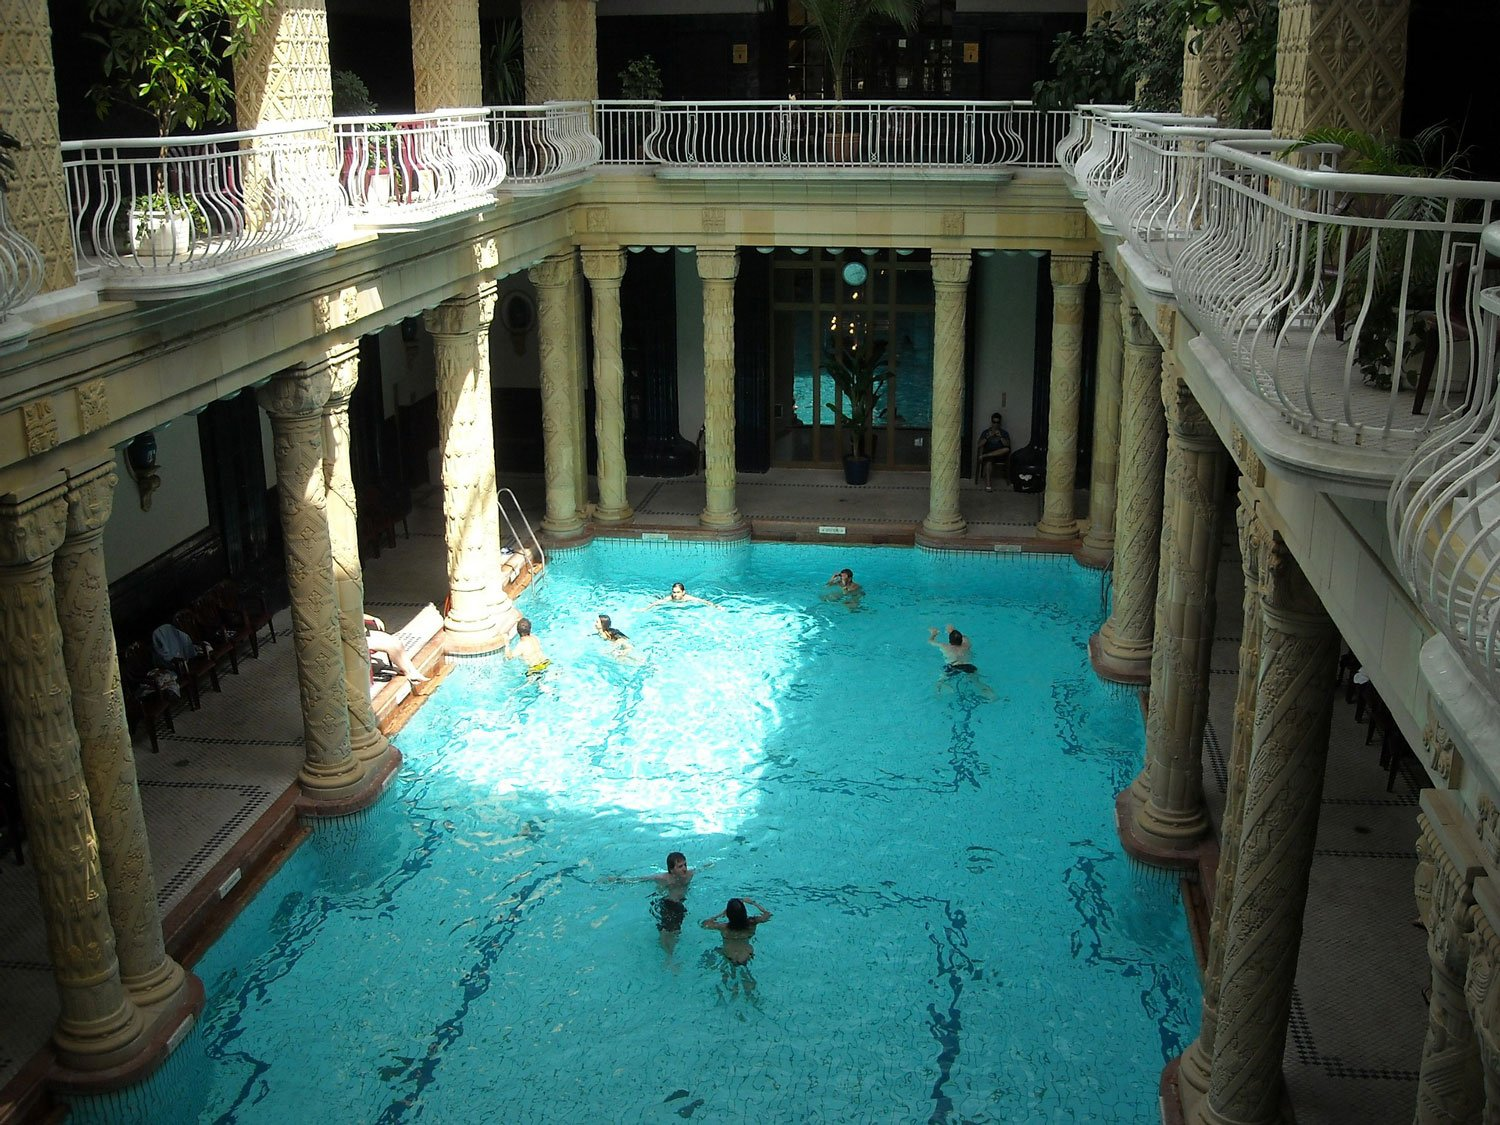 Budapest Thermal Baths gellert baths